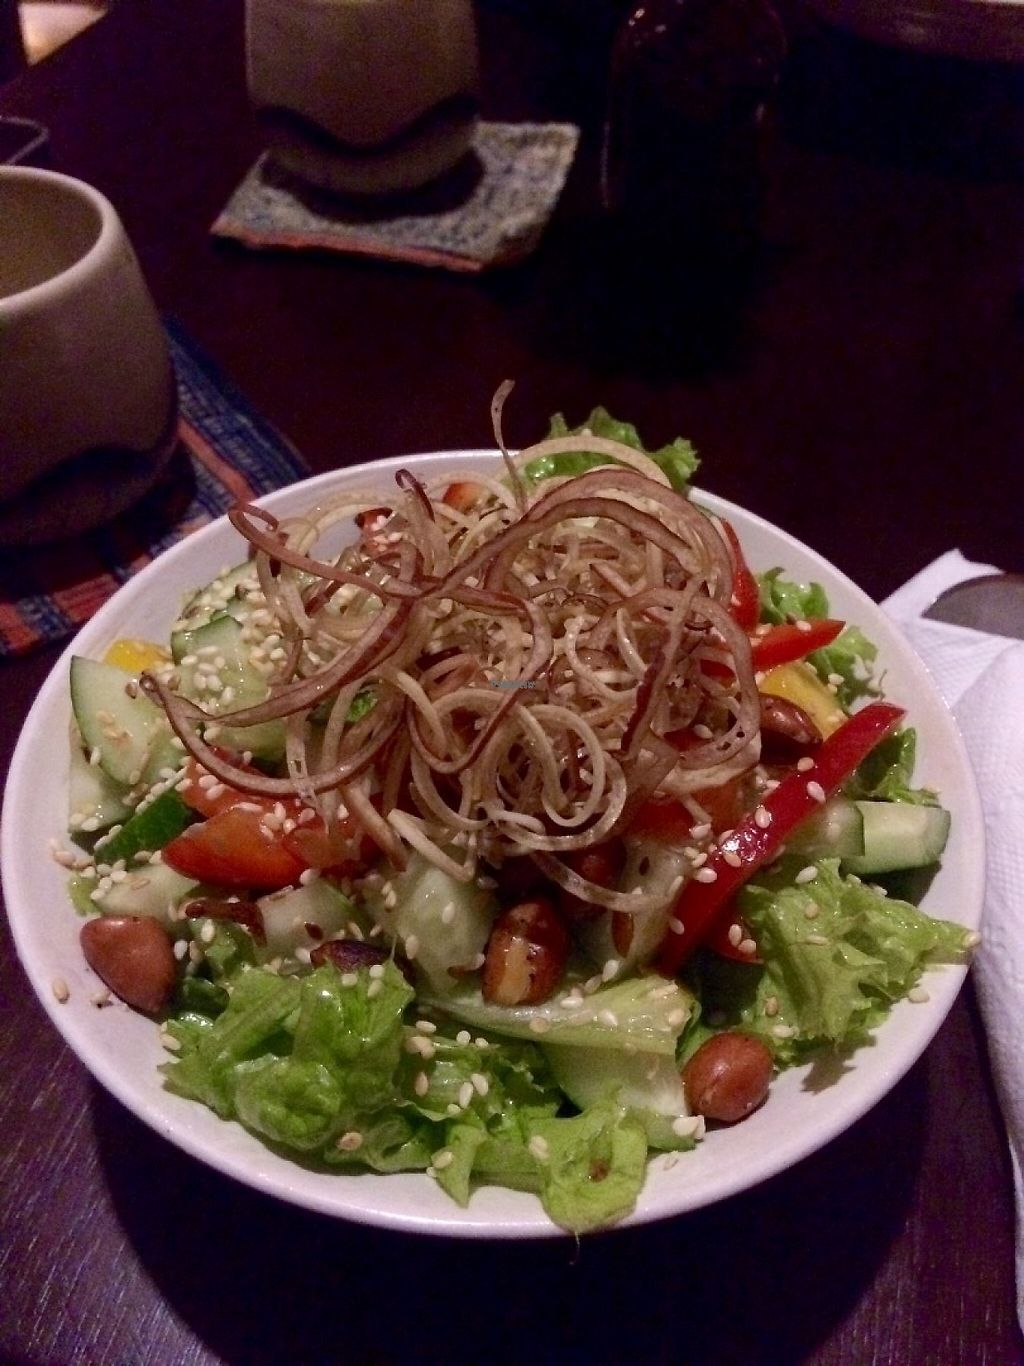 """Photo of Tree Hugger Cafe  by <a href=""""/members/profile/IsabelleLea"""">IsabelleLea</a> <br/>super delicious salad <br/> February 13, 2017  - <a href='/contact/abuse/image/82194/226287'>Report</a>"""